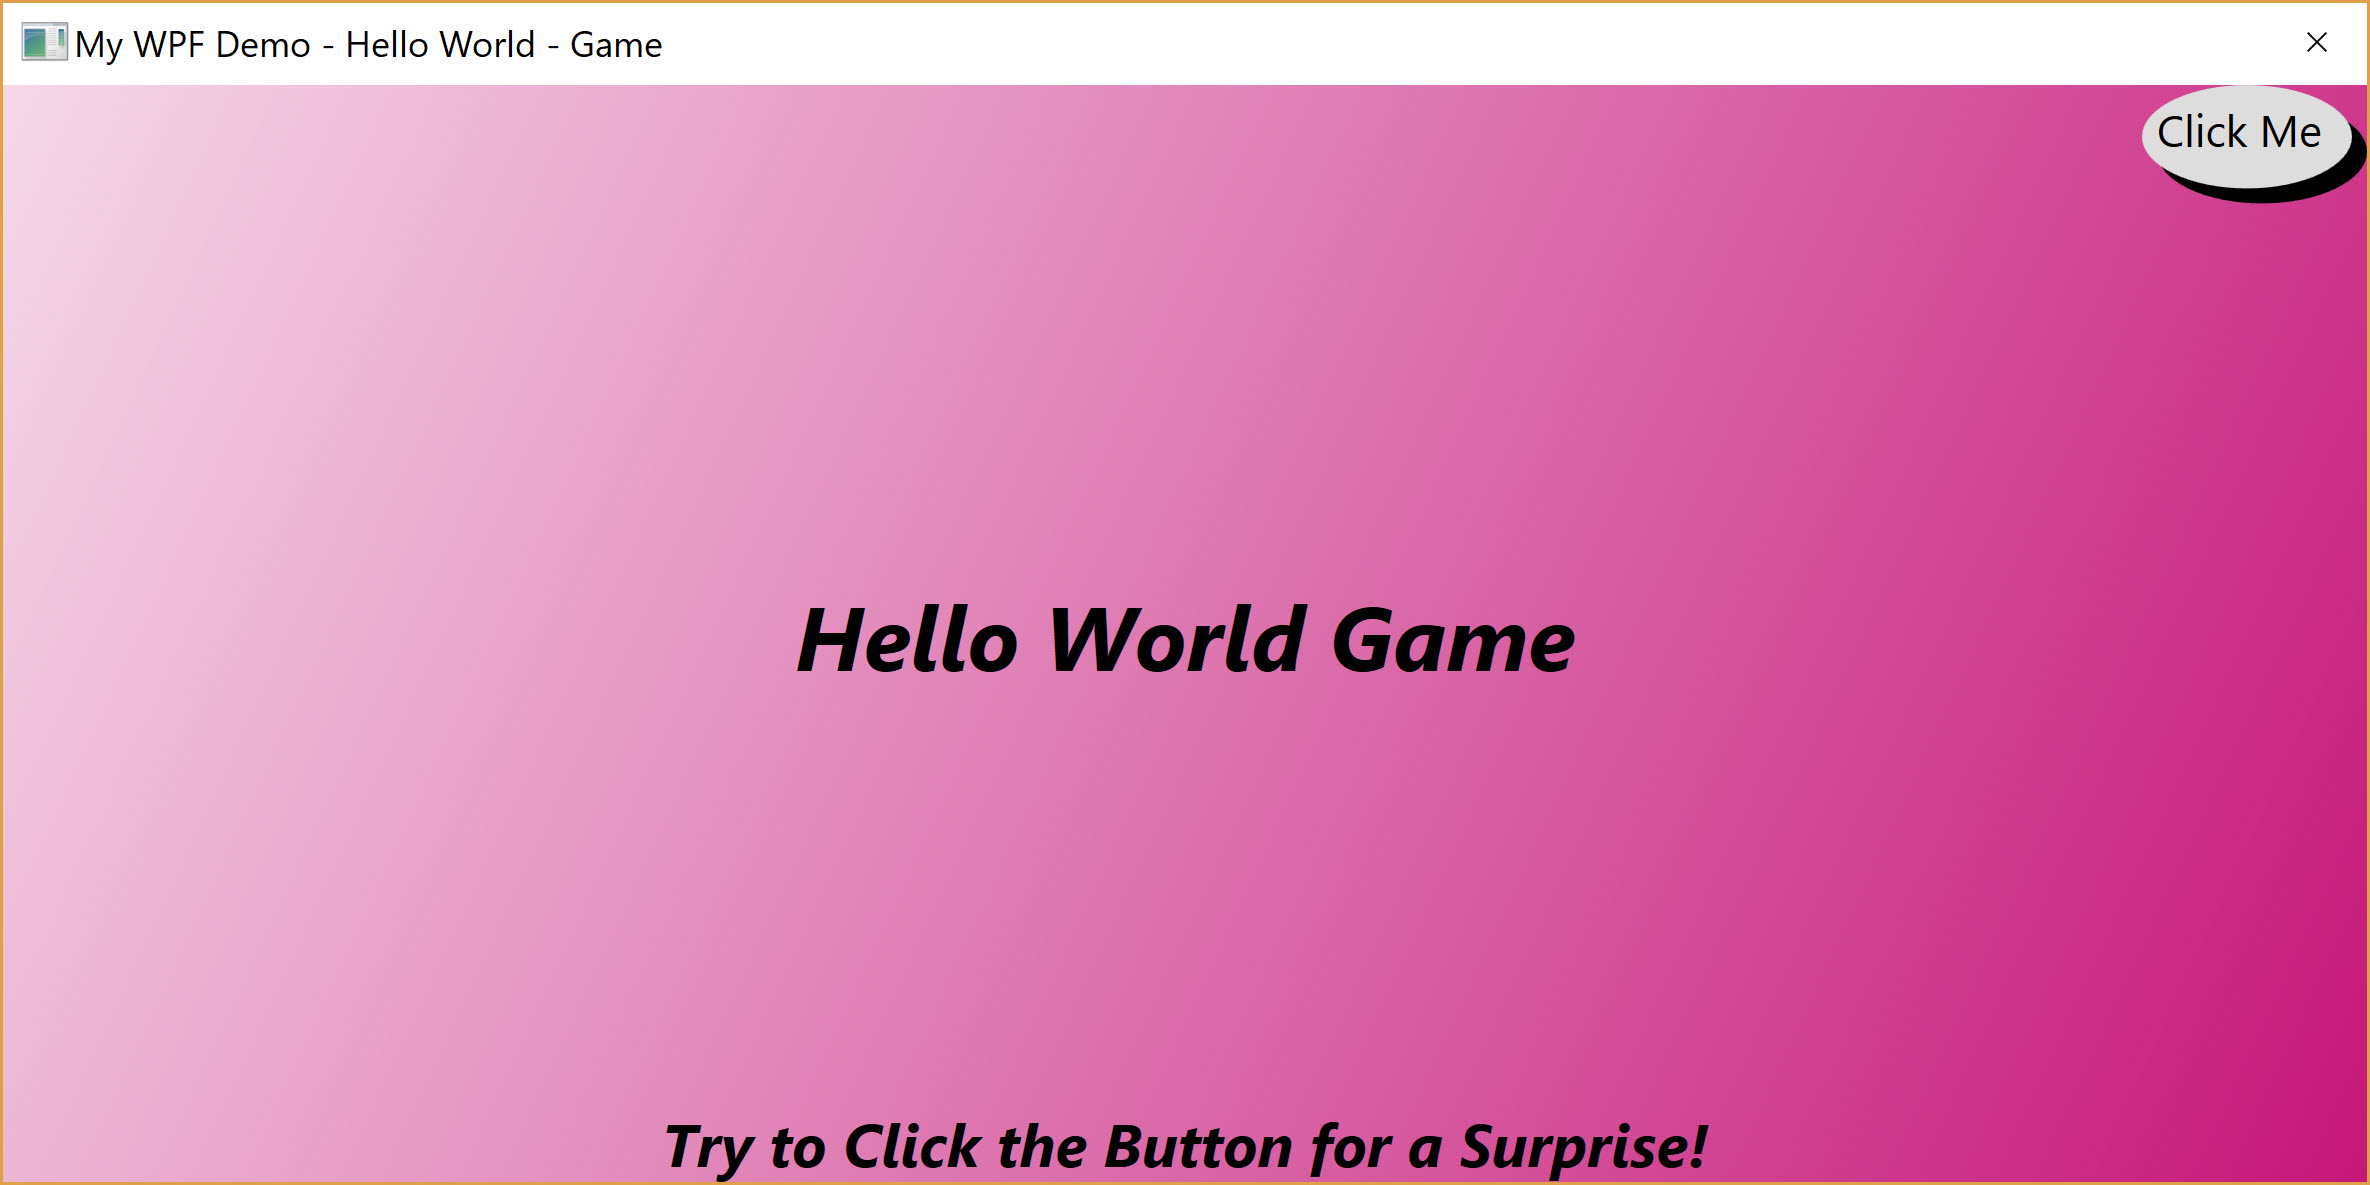 Hello World Game Main Display